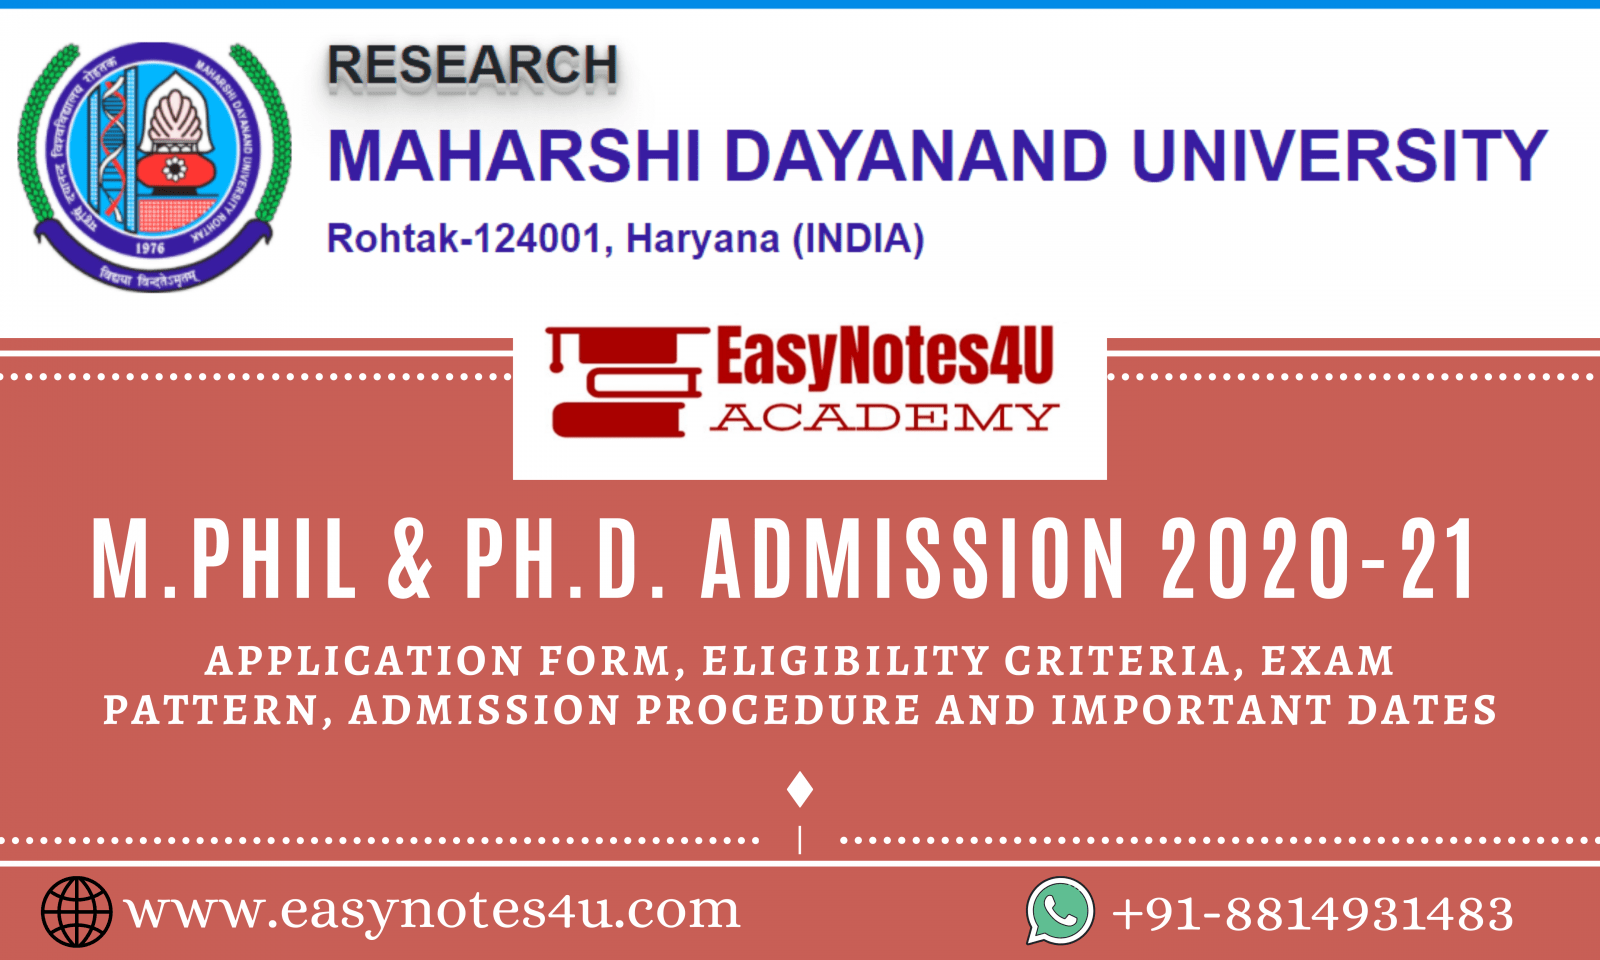 M.Phil & Ph.D. Admission Notice MDU Rohtak 2020-21 – Eligibility Criteria, Application Form & Procedure Important Dates